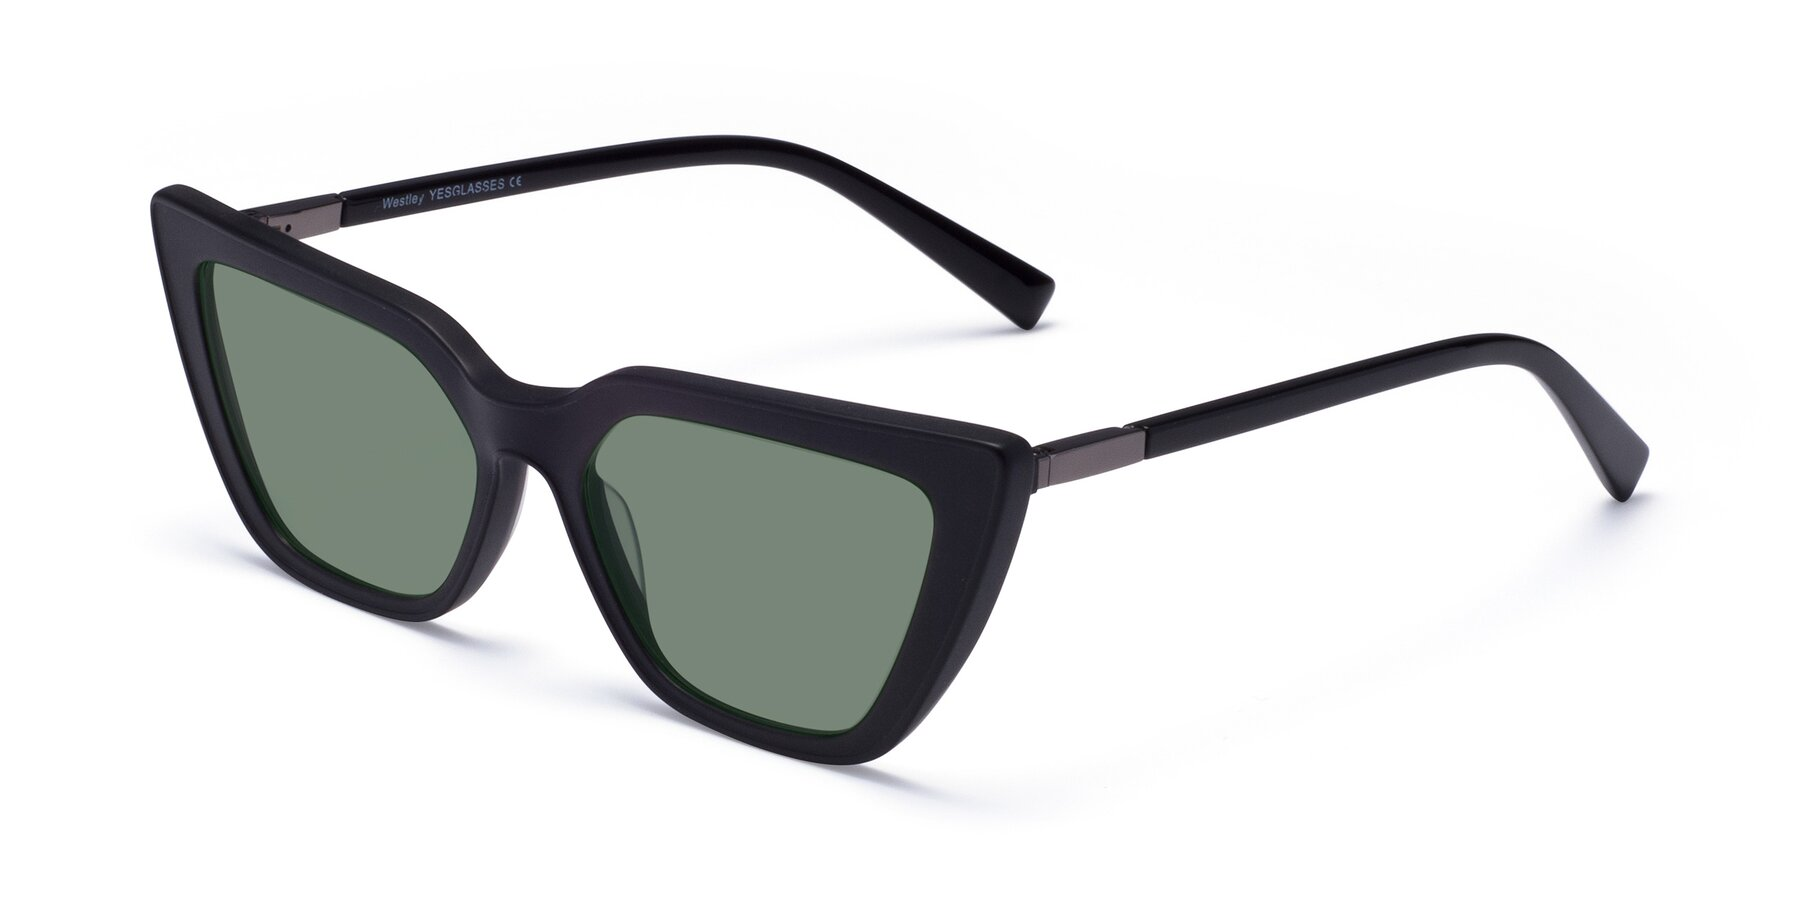 Angle of Westley in Matte Black with Medium Green Tinted Lenses